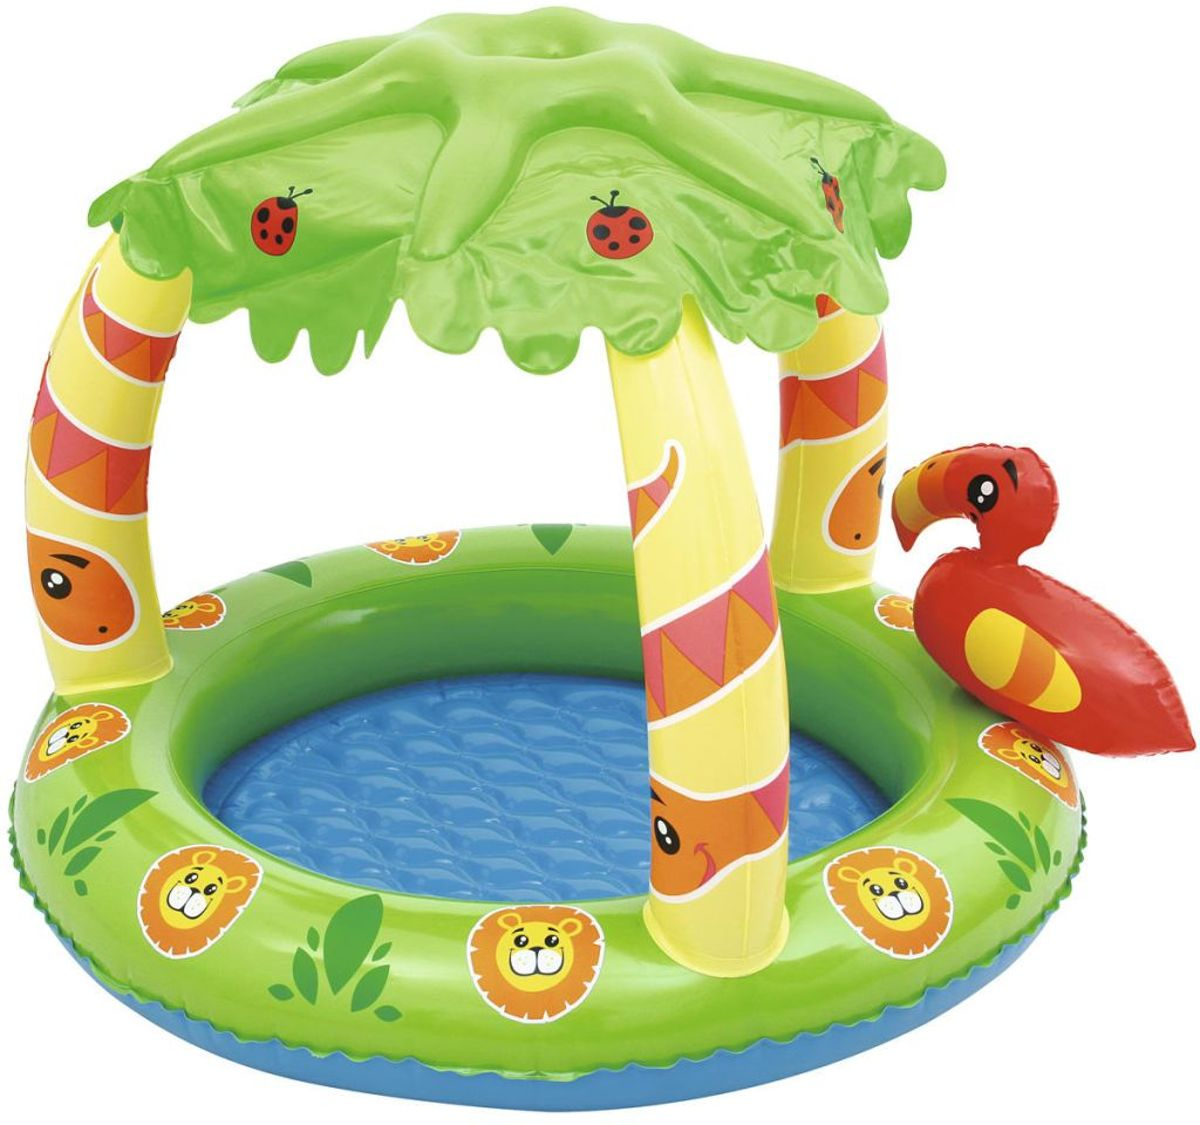 Bestway UV Careful Friendly Jungle kinderzwembad 52179